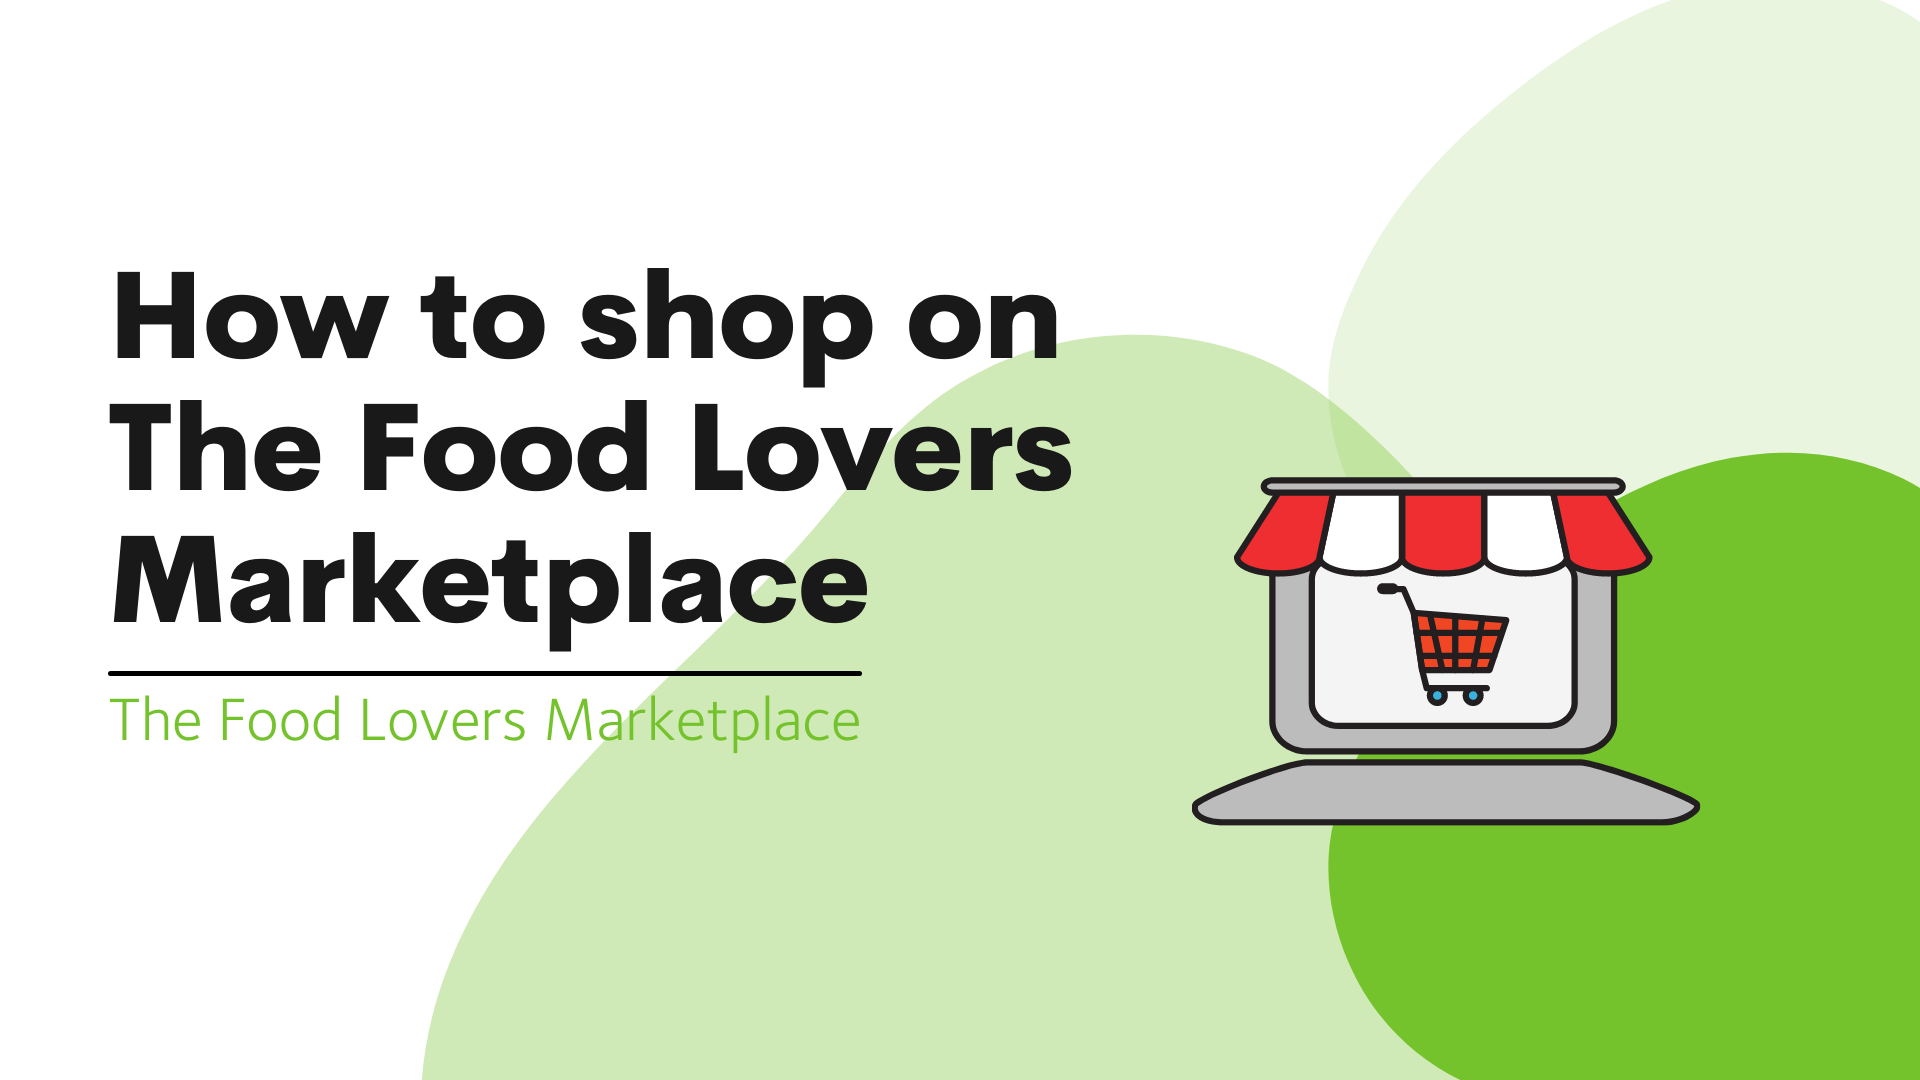 How to shop on The Food Lovers Marketplace